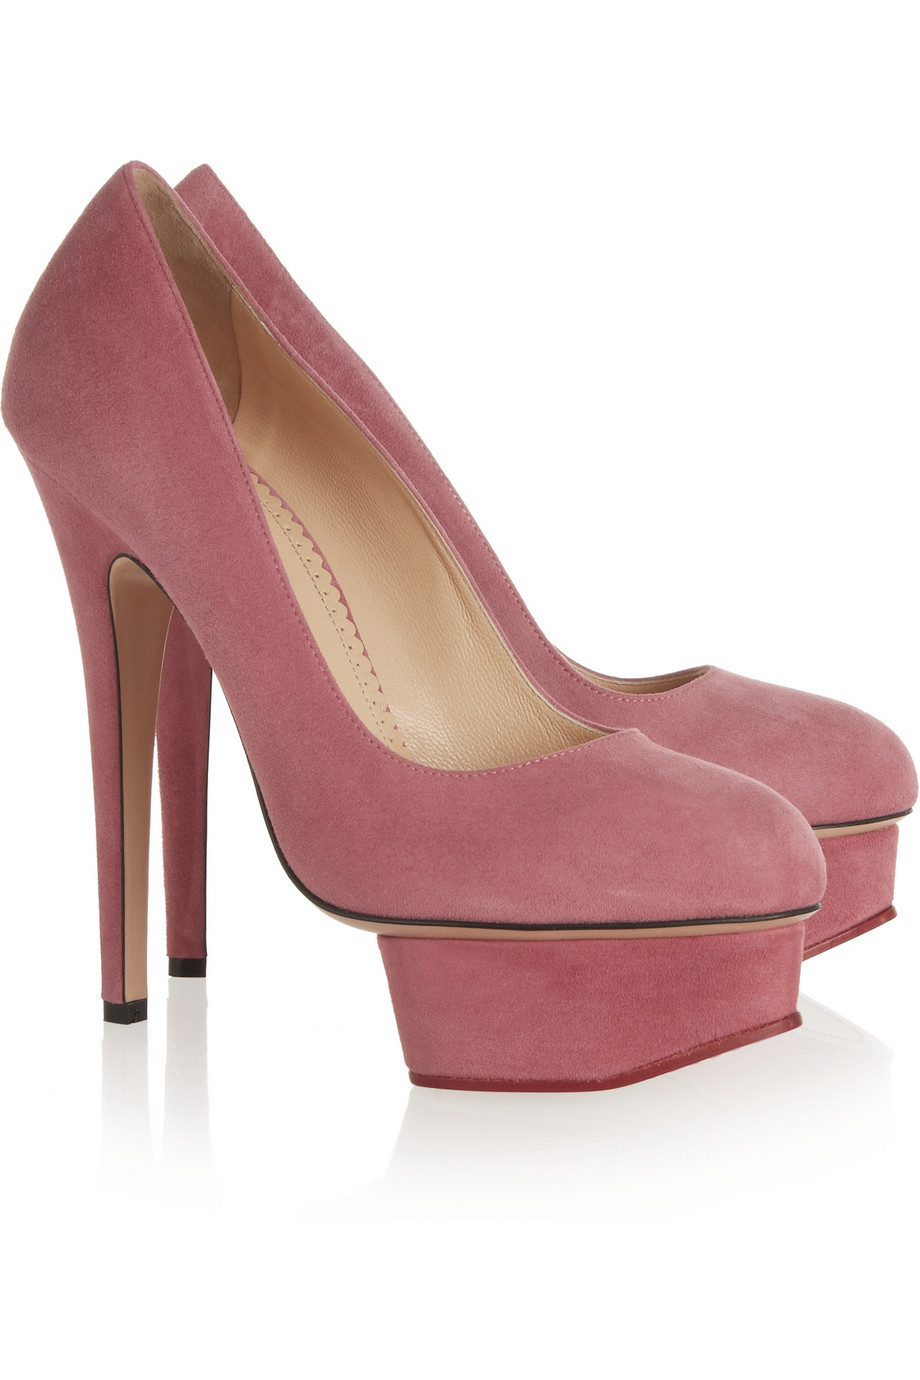 charlotte olympia eternally dolly embellished suede pumps in pink lyst. Black Bedroom Furniture Sets. Home Design Ideas